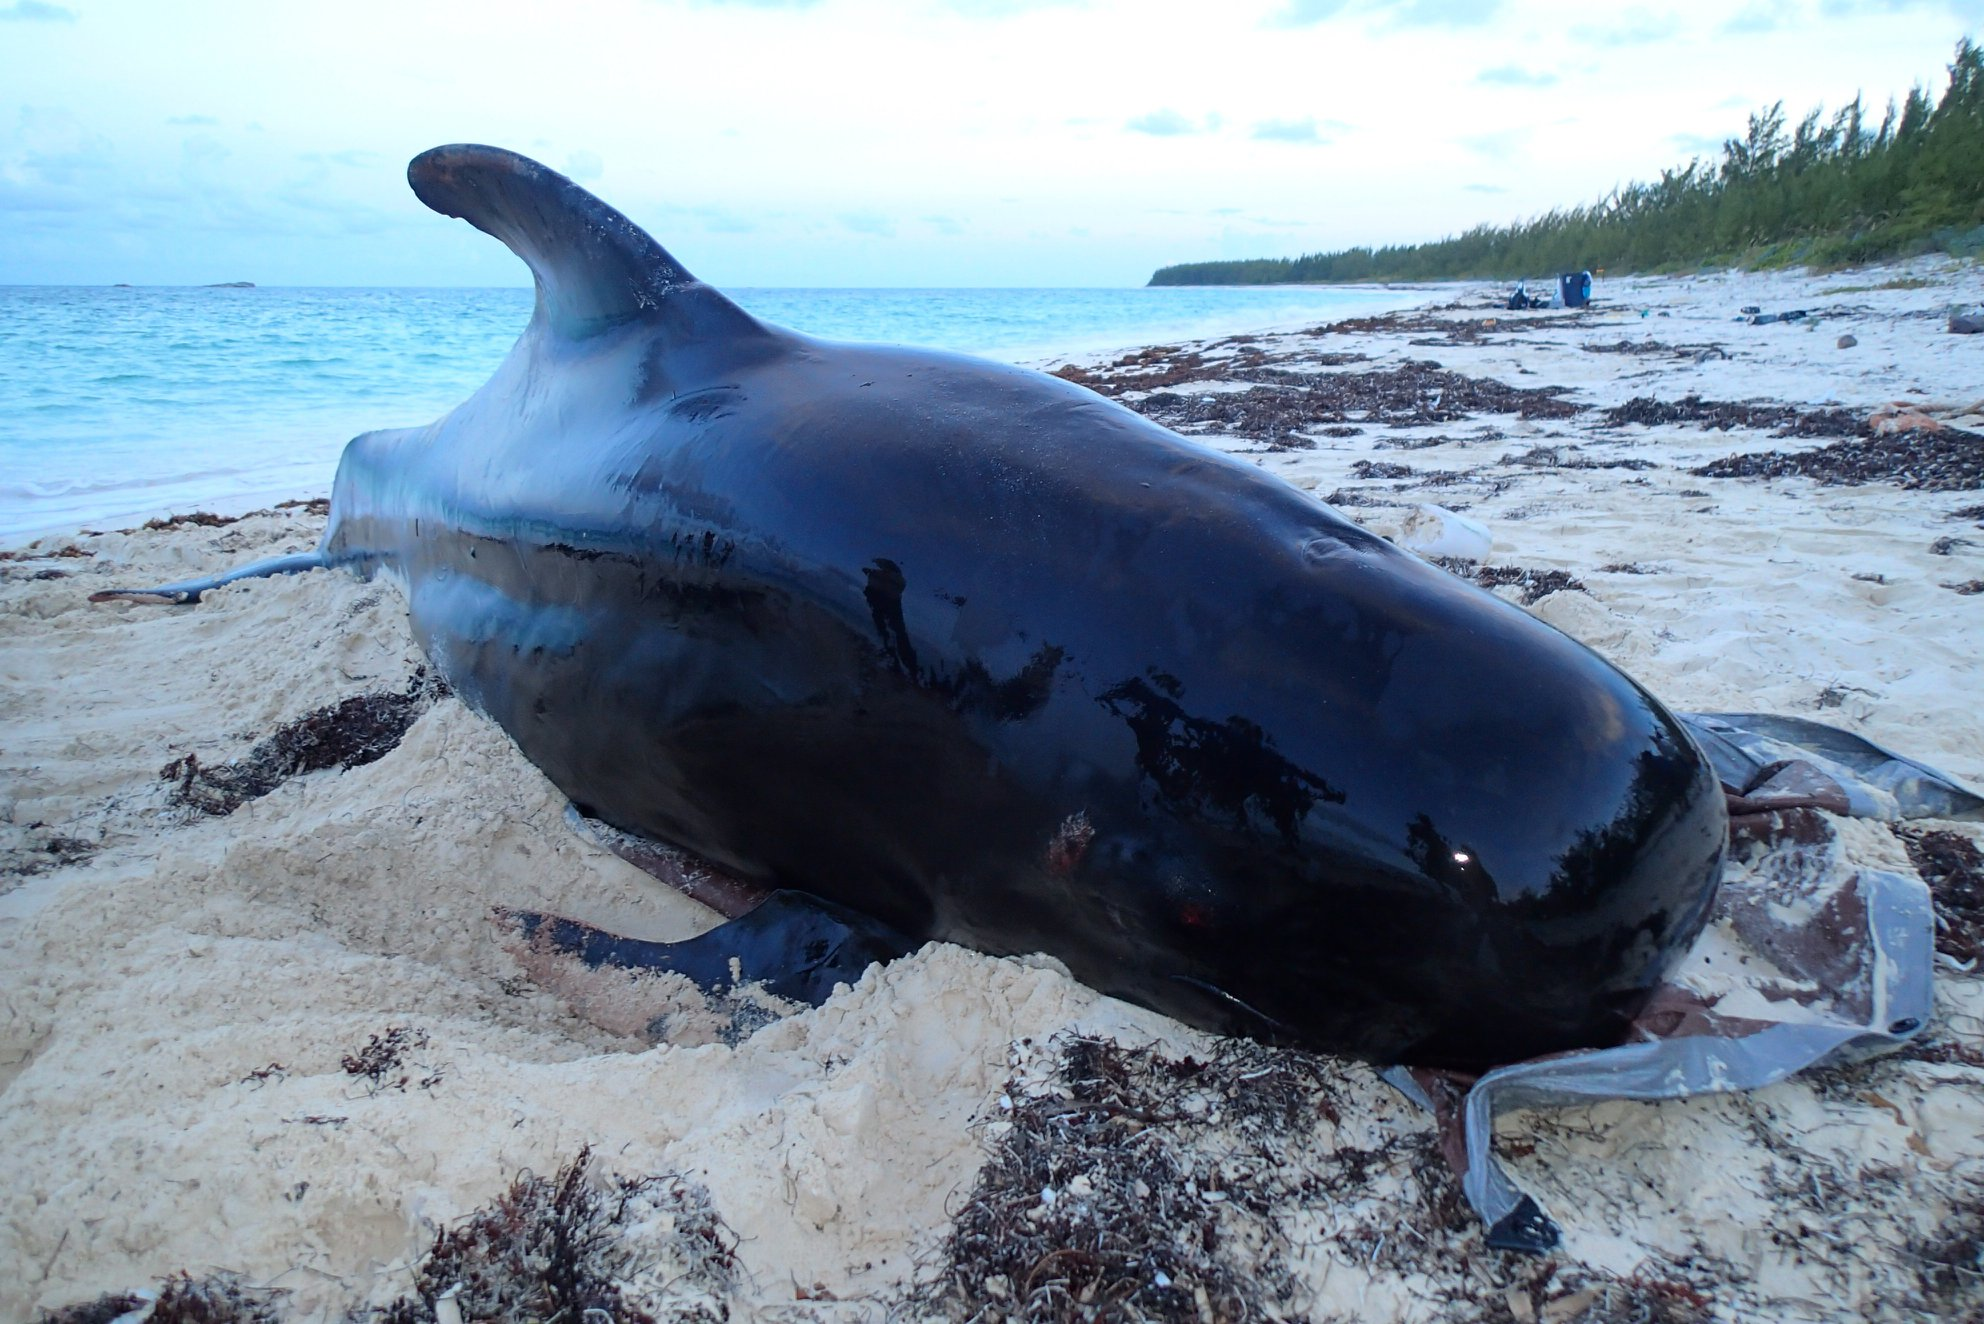 Death of beached whale evokes conflicting views